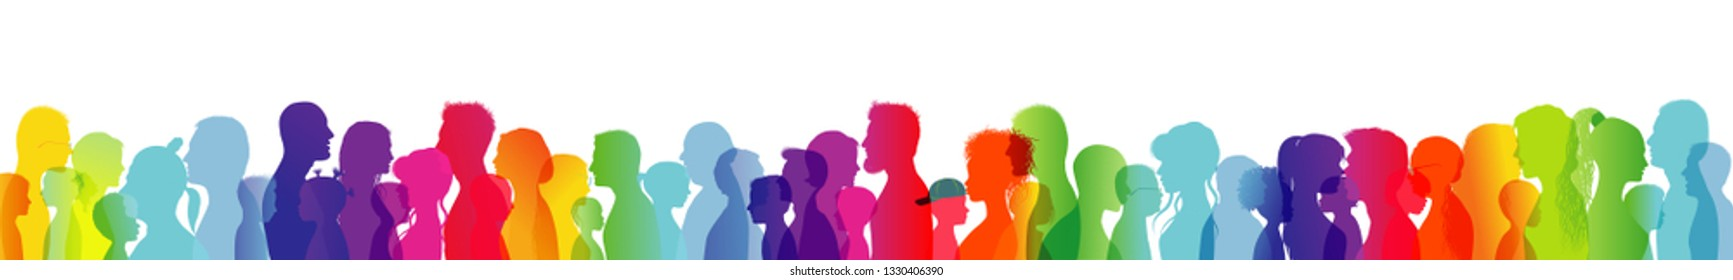 Dialogue between people of different ages and ethnic groups. Crowd talking. Rainbow colored profile silhouette. Many different people talking. Diversity between people. Multiple exposure